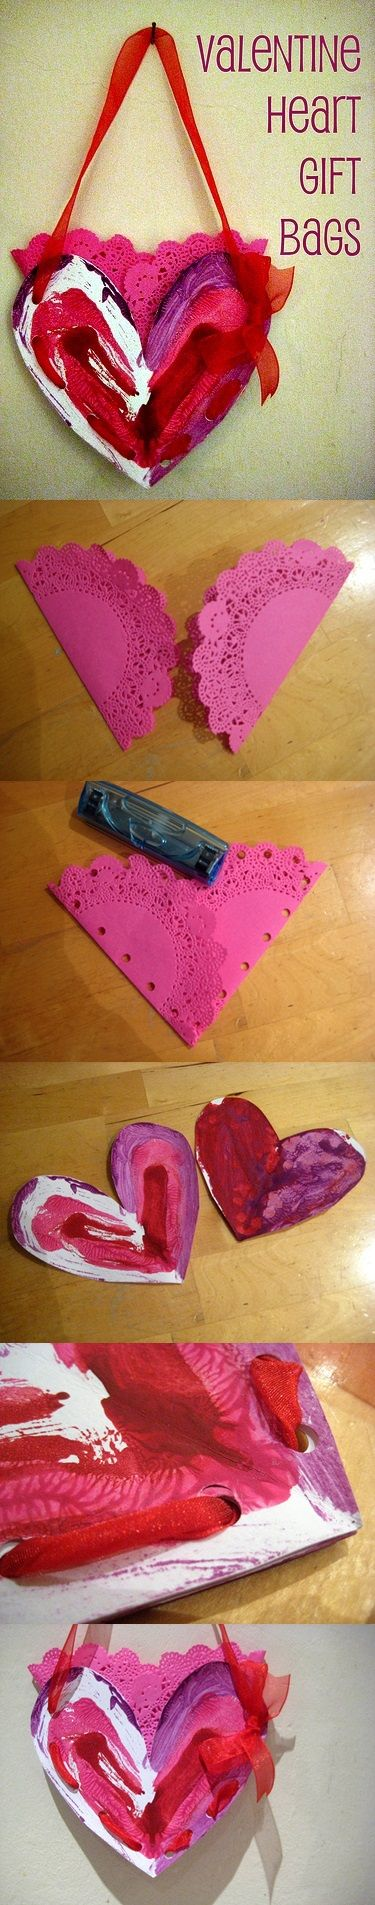 17 best images about valentine 39 s day on pinterest for How to make creative things for your room